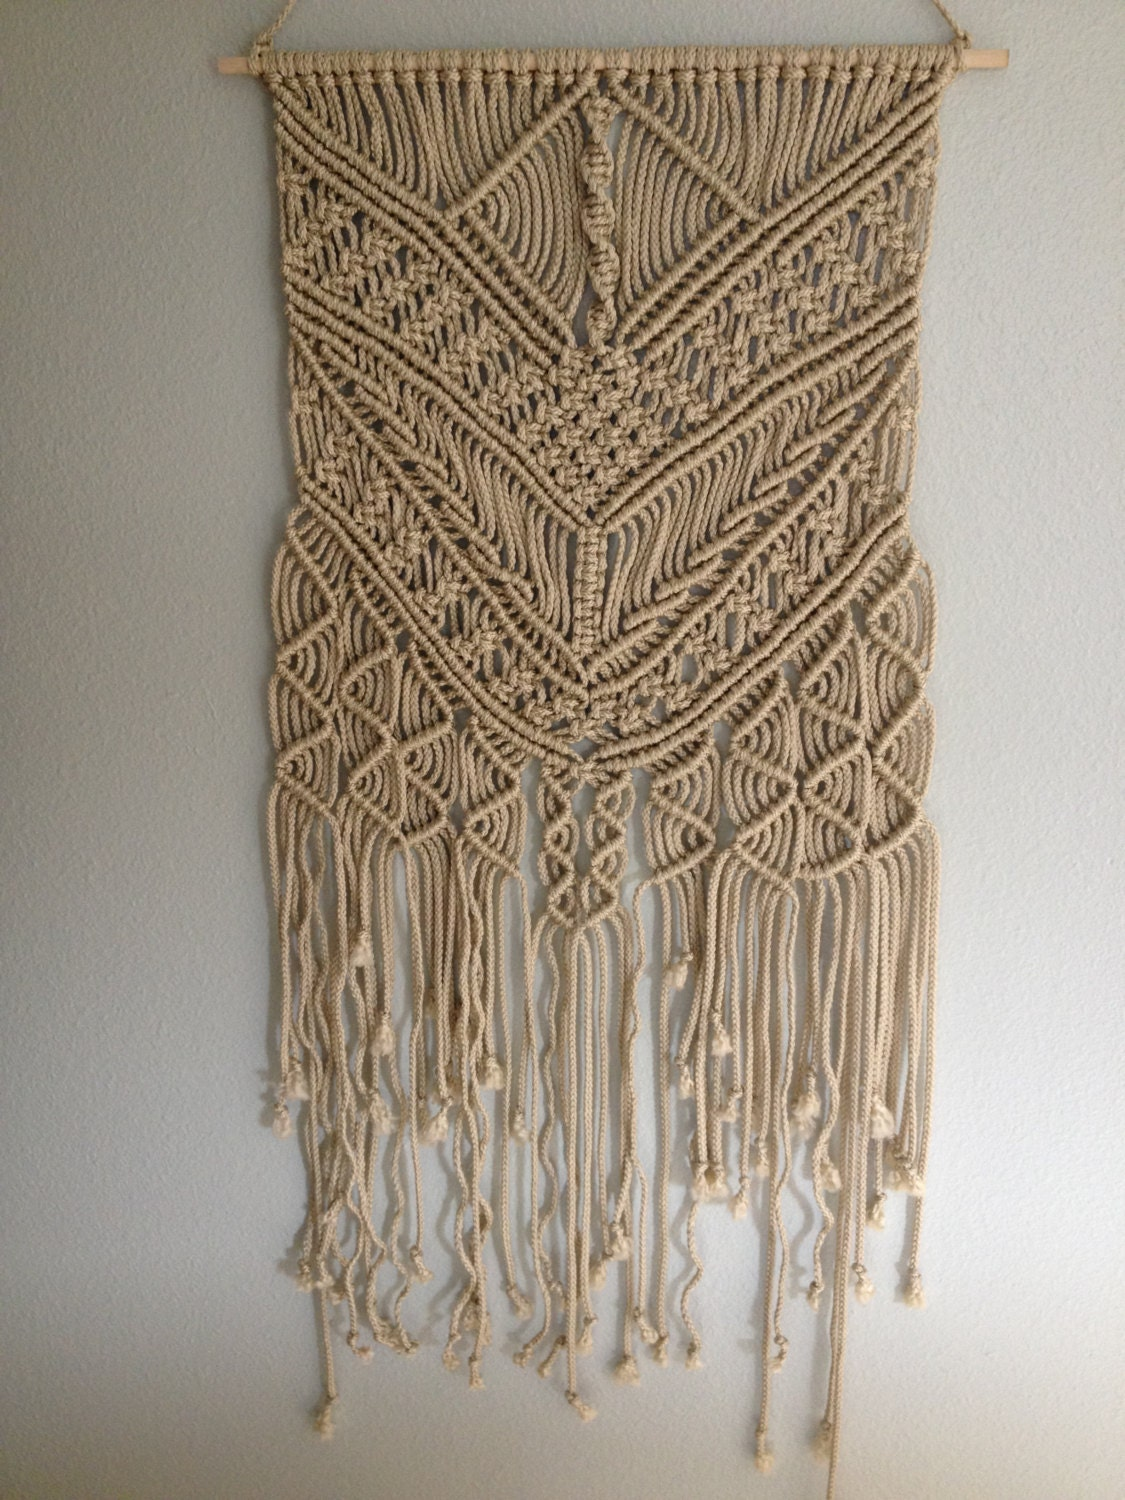 Macrame wall hanging macrame home decor for How to make decorative wall hangings at home